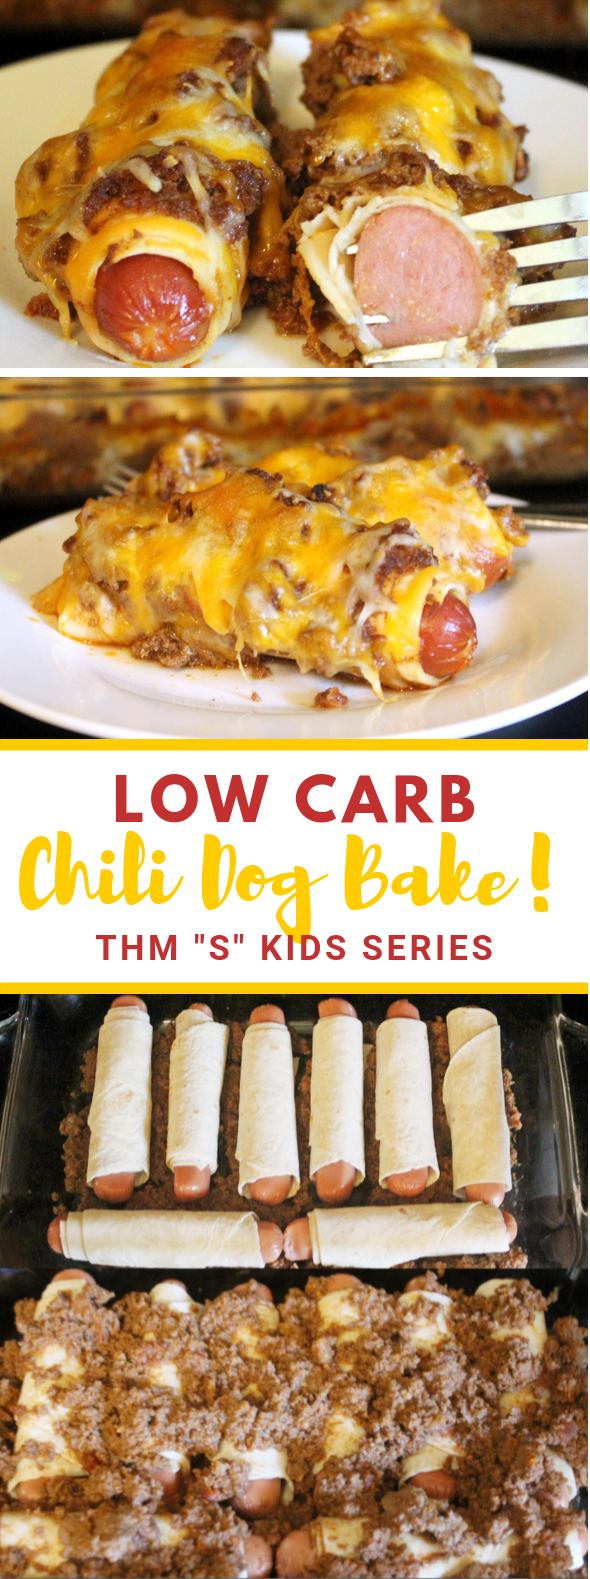 CHILI DOG BAKE | LOW CARB & THM KIDS SERIES #healthy #diet #lowcarb #dinner